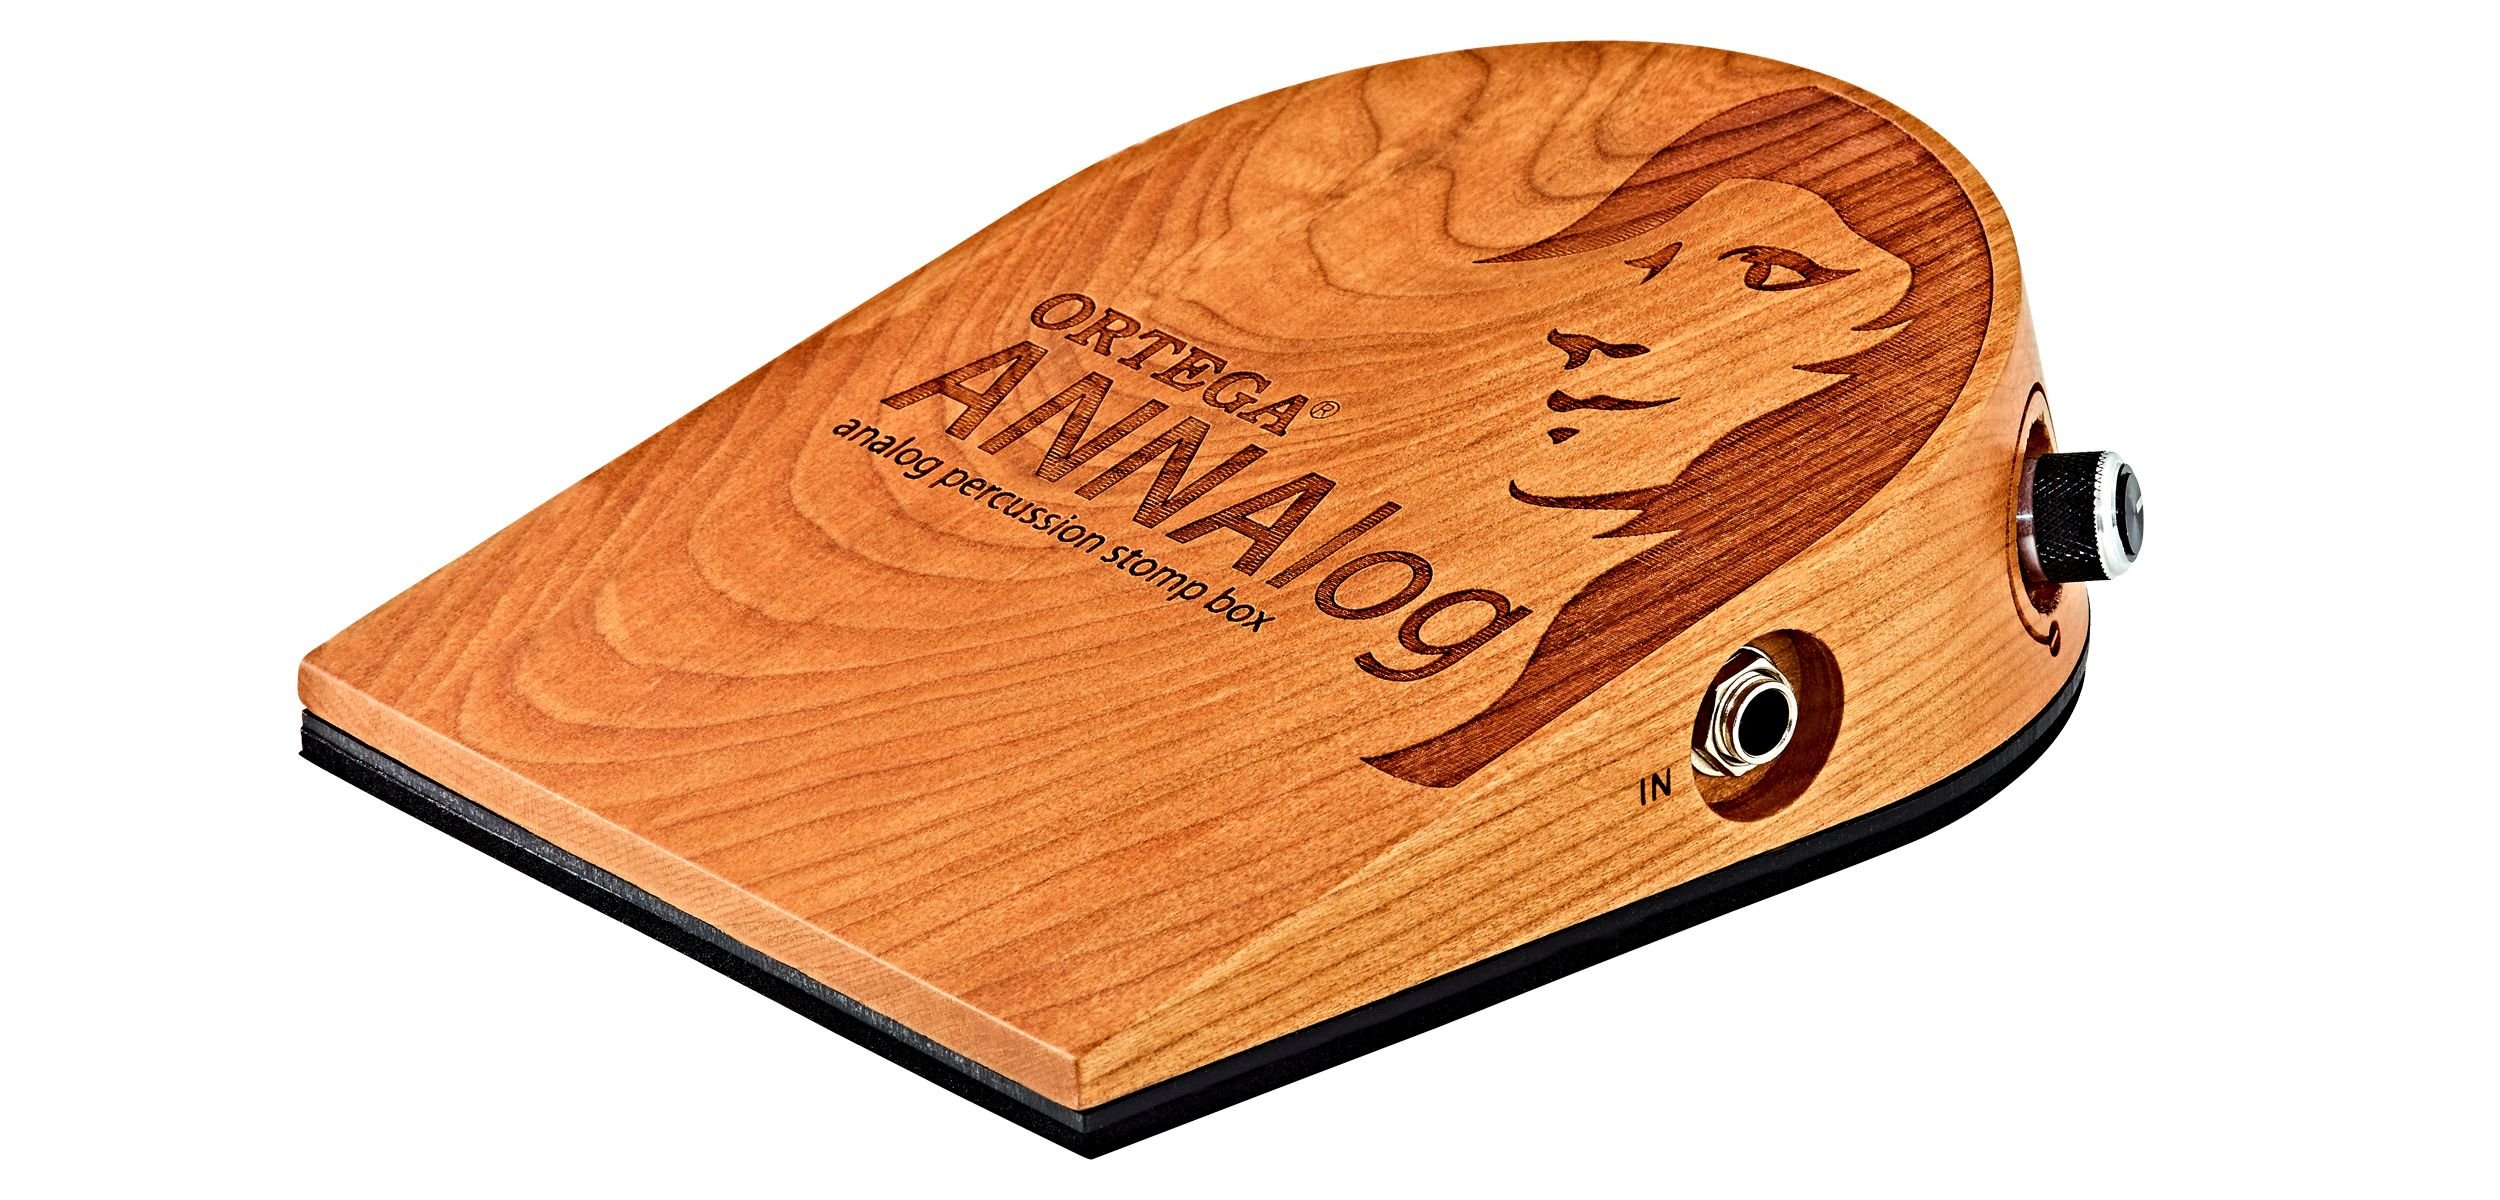 Ortega Guitars ANNALOG Stomp Box with Built-in Sound Optimized Piezo Technology